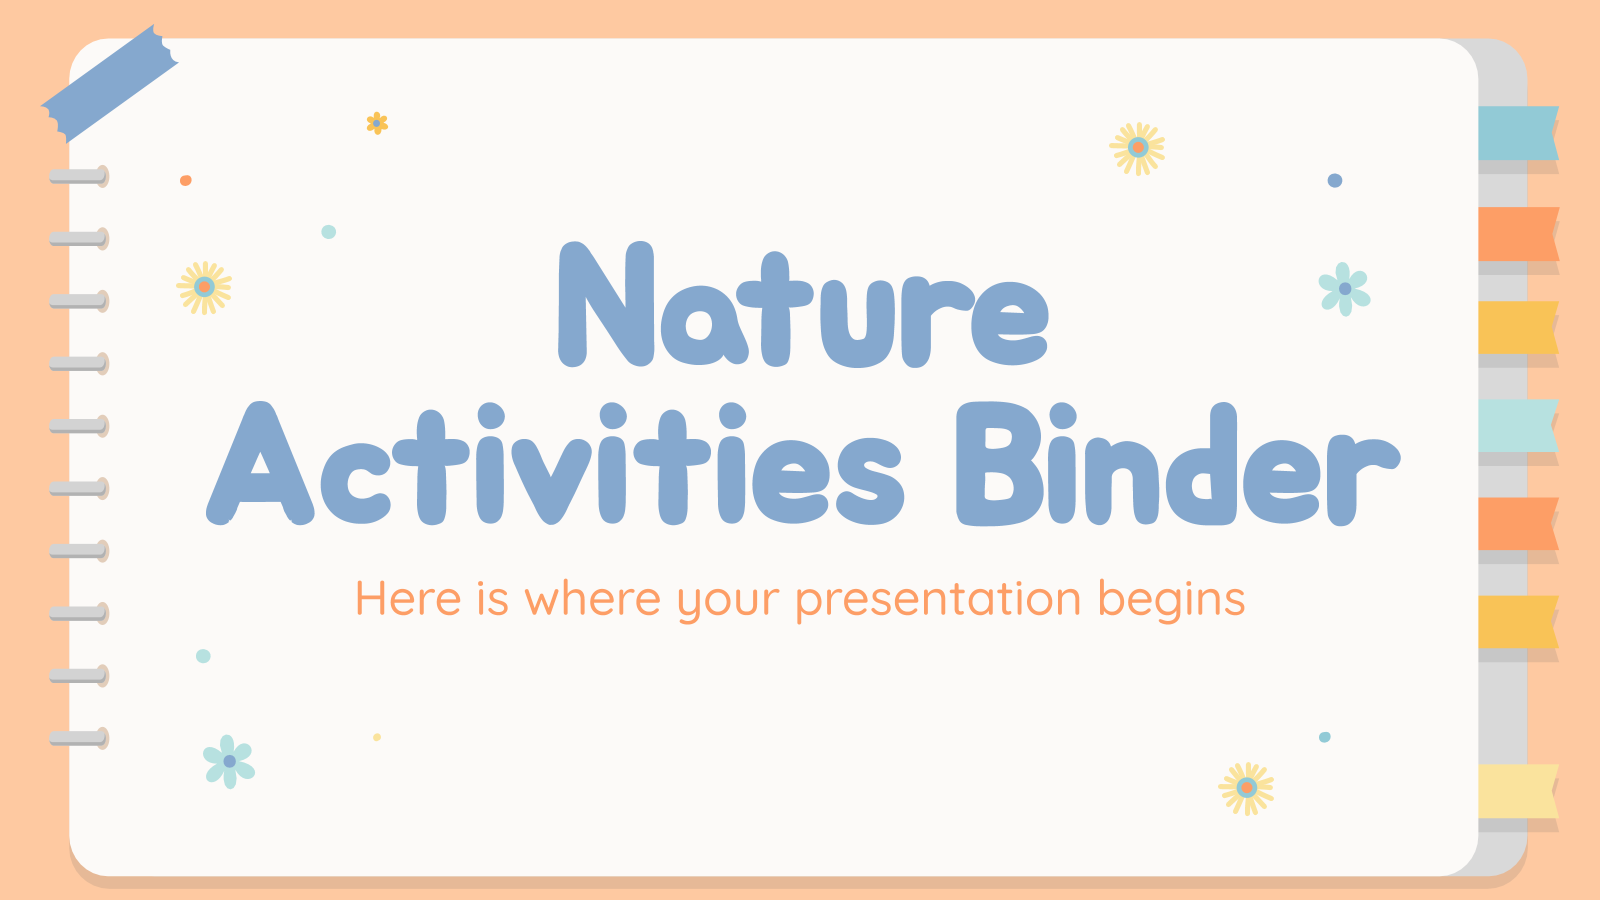 Nature Activities Binder presentation template